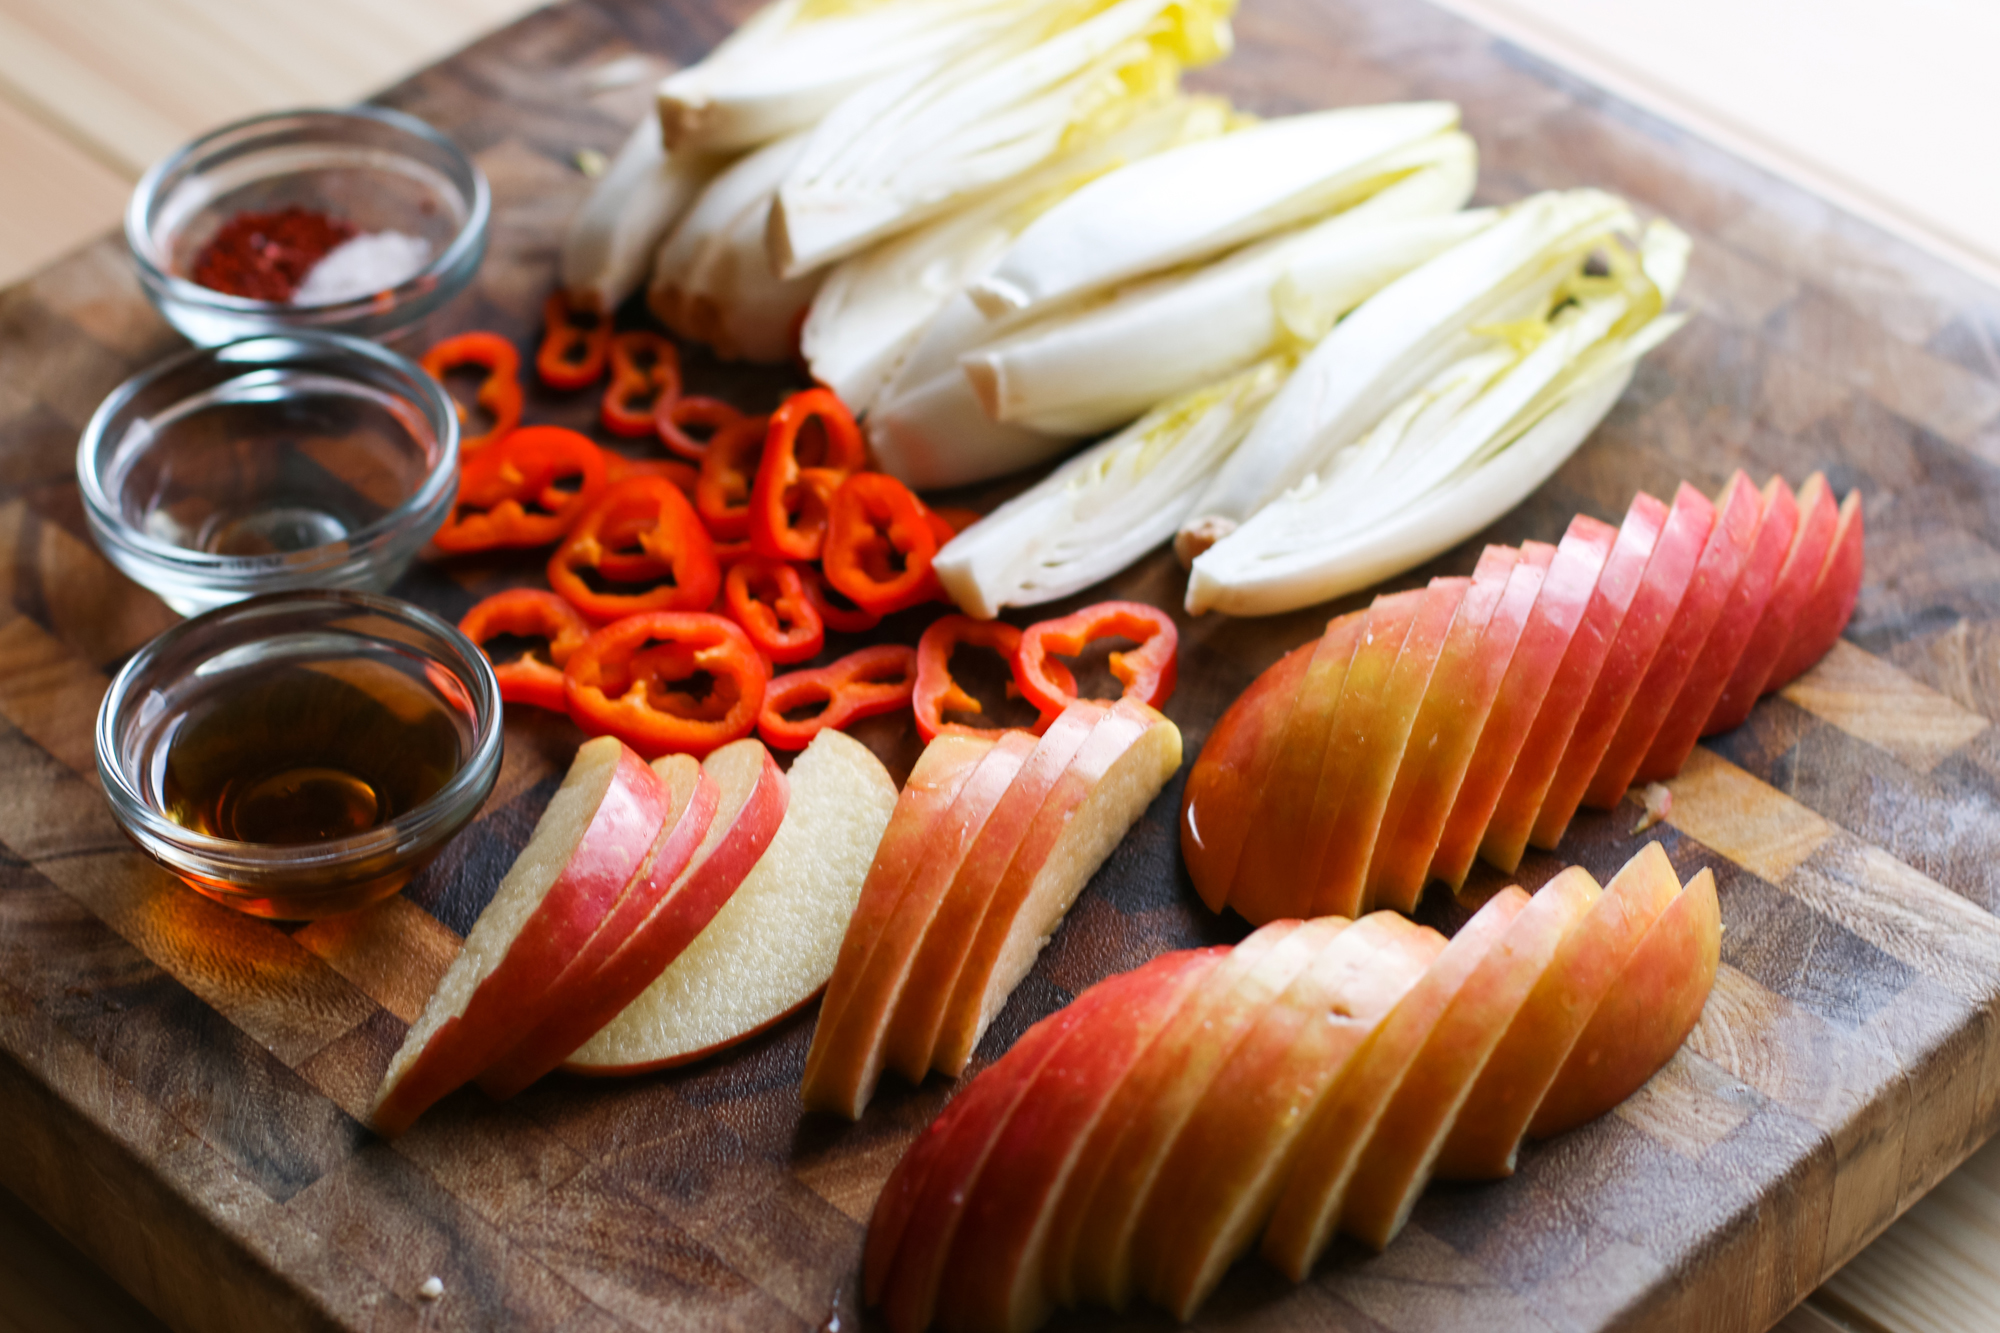 Quarter the endives. Thinly slice the chilis into round pieces. Cut large pieces around the core of the Fuji apple. Thinly slice while keeping the form of the piece intact, to be fanned in the salad.